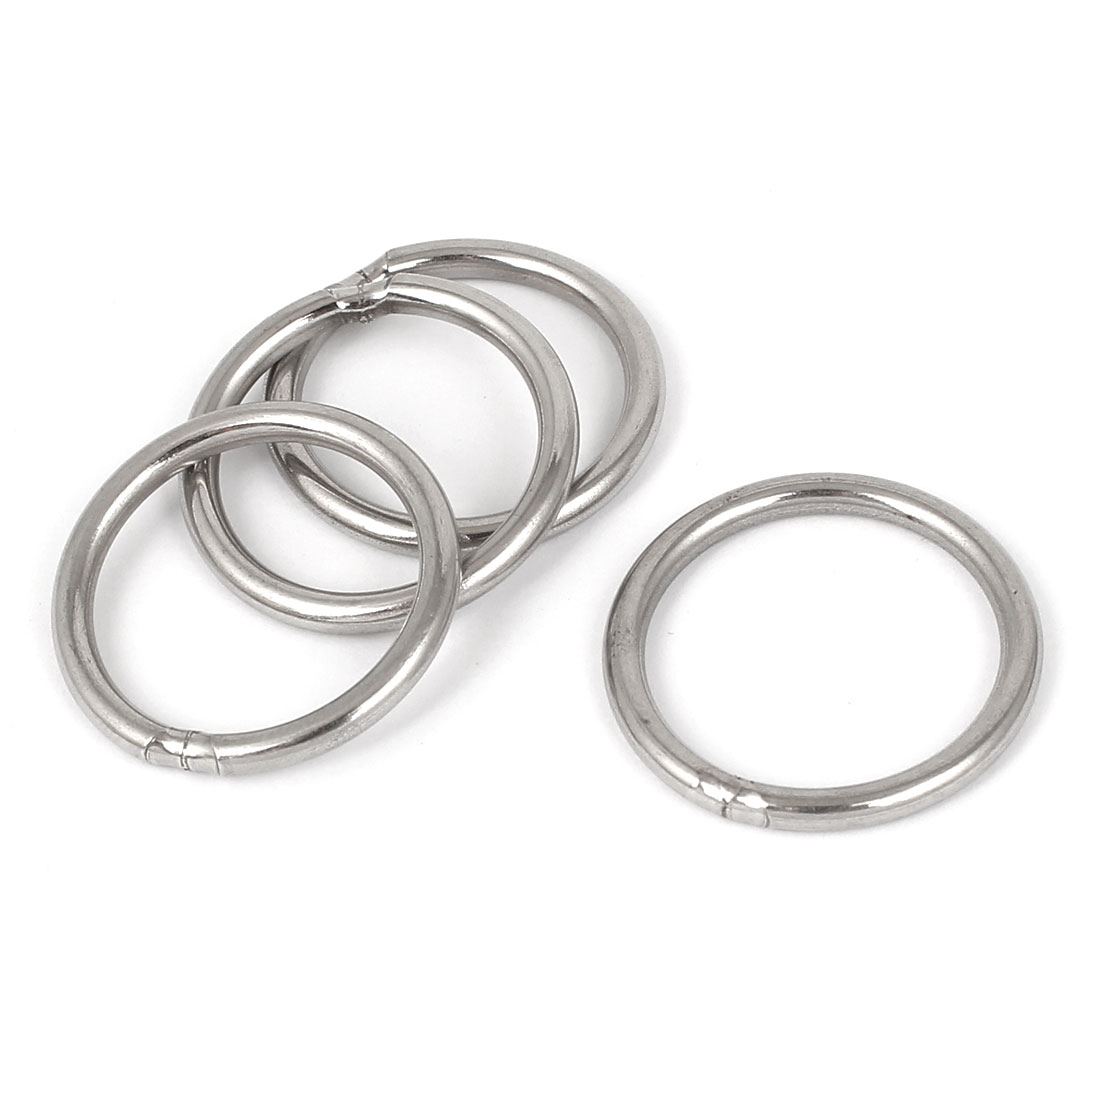 M3 x 30mm 201 Stainless Steel Strapping Welded Round O Rings 4 Pcs